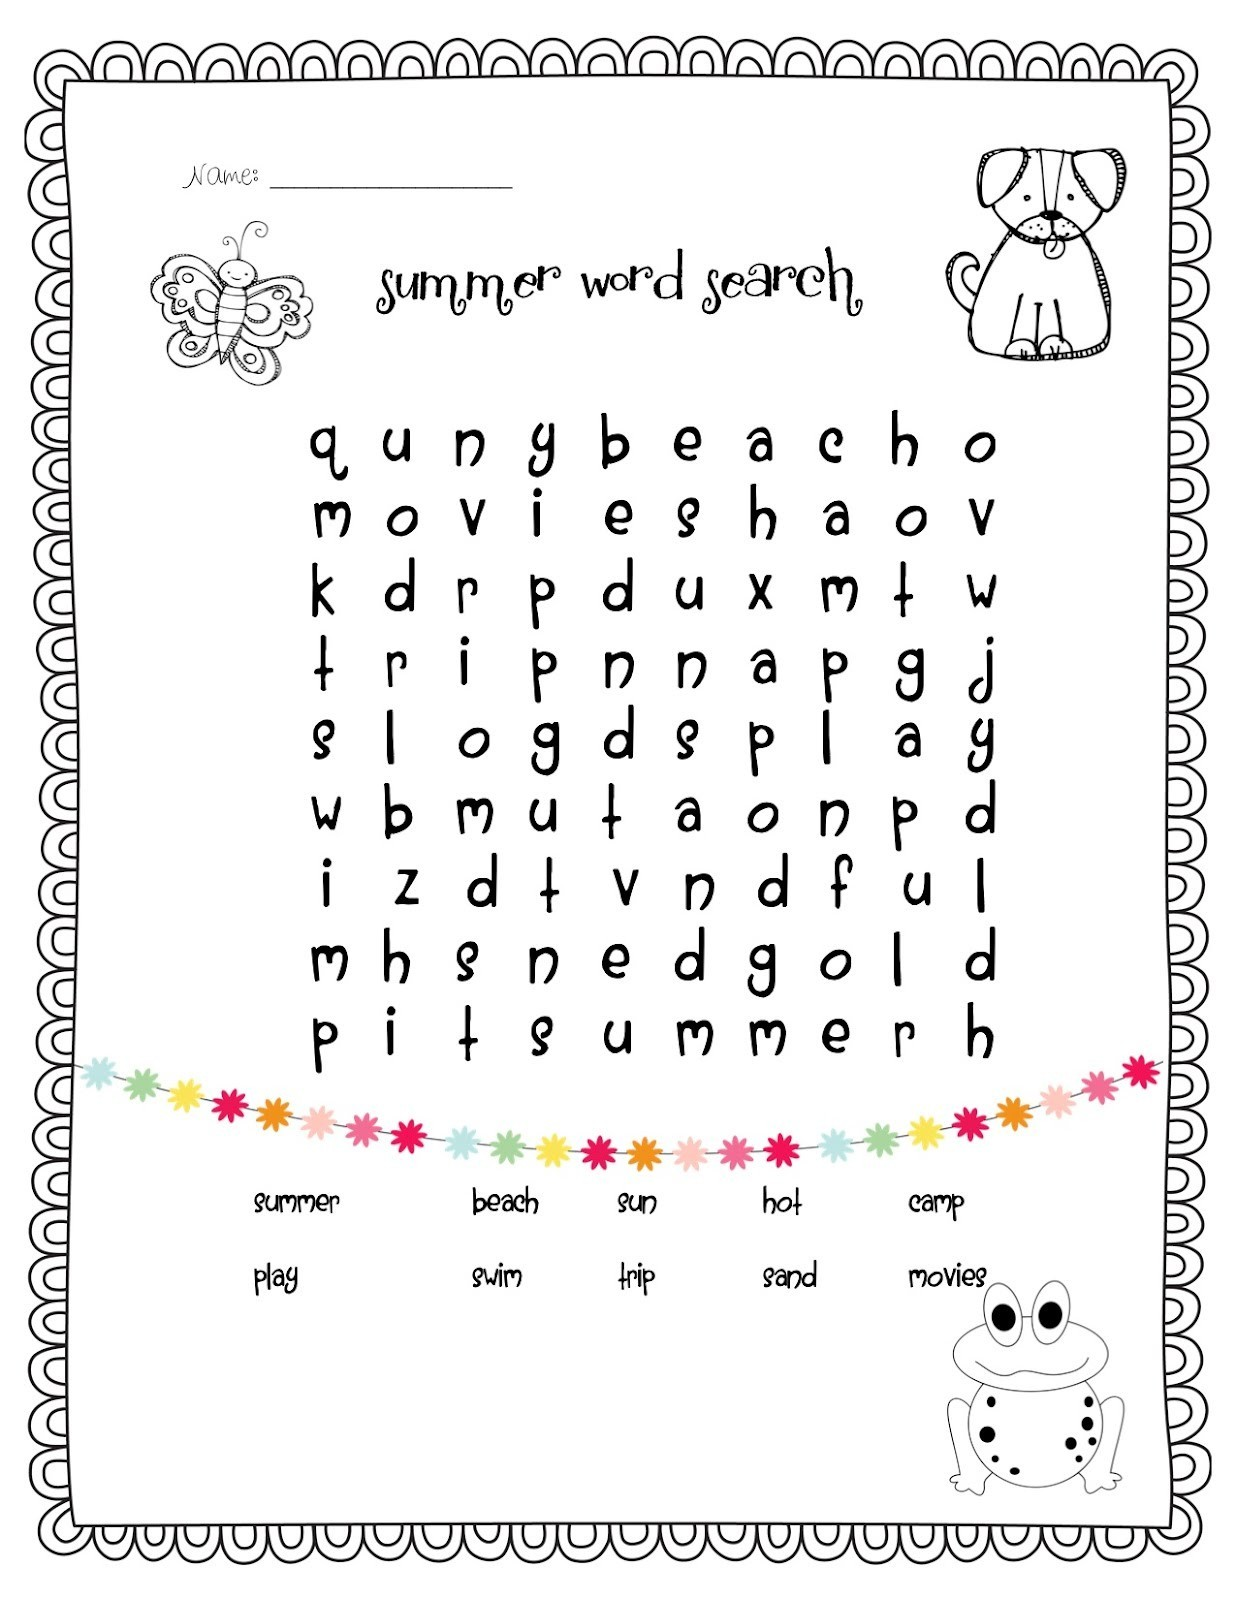 Easy Word Search For Kids